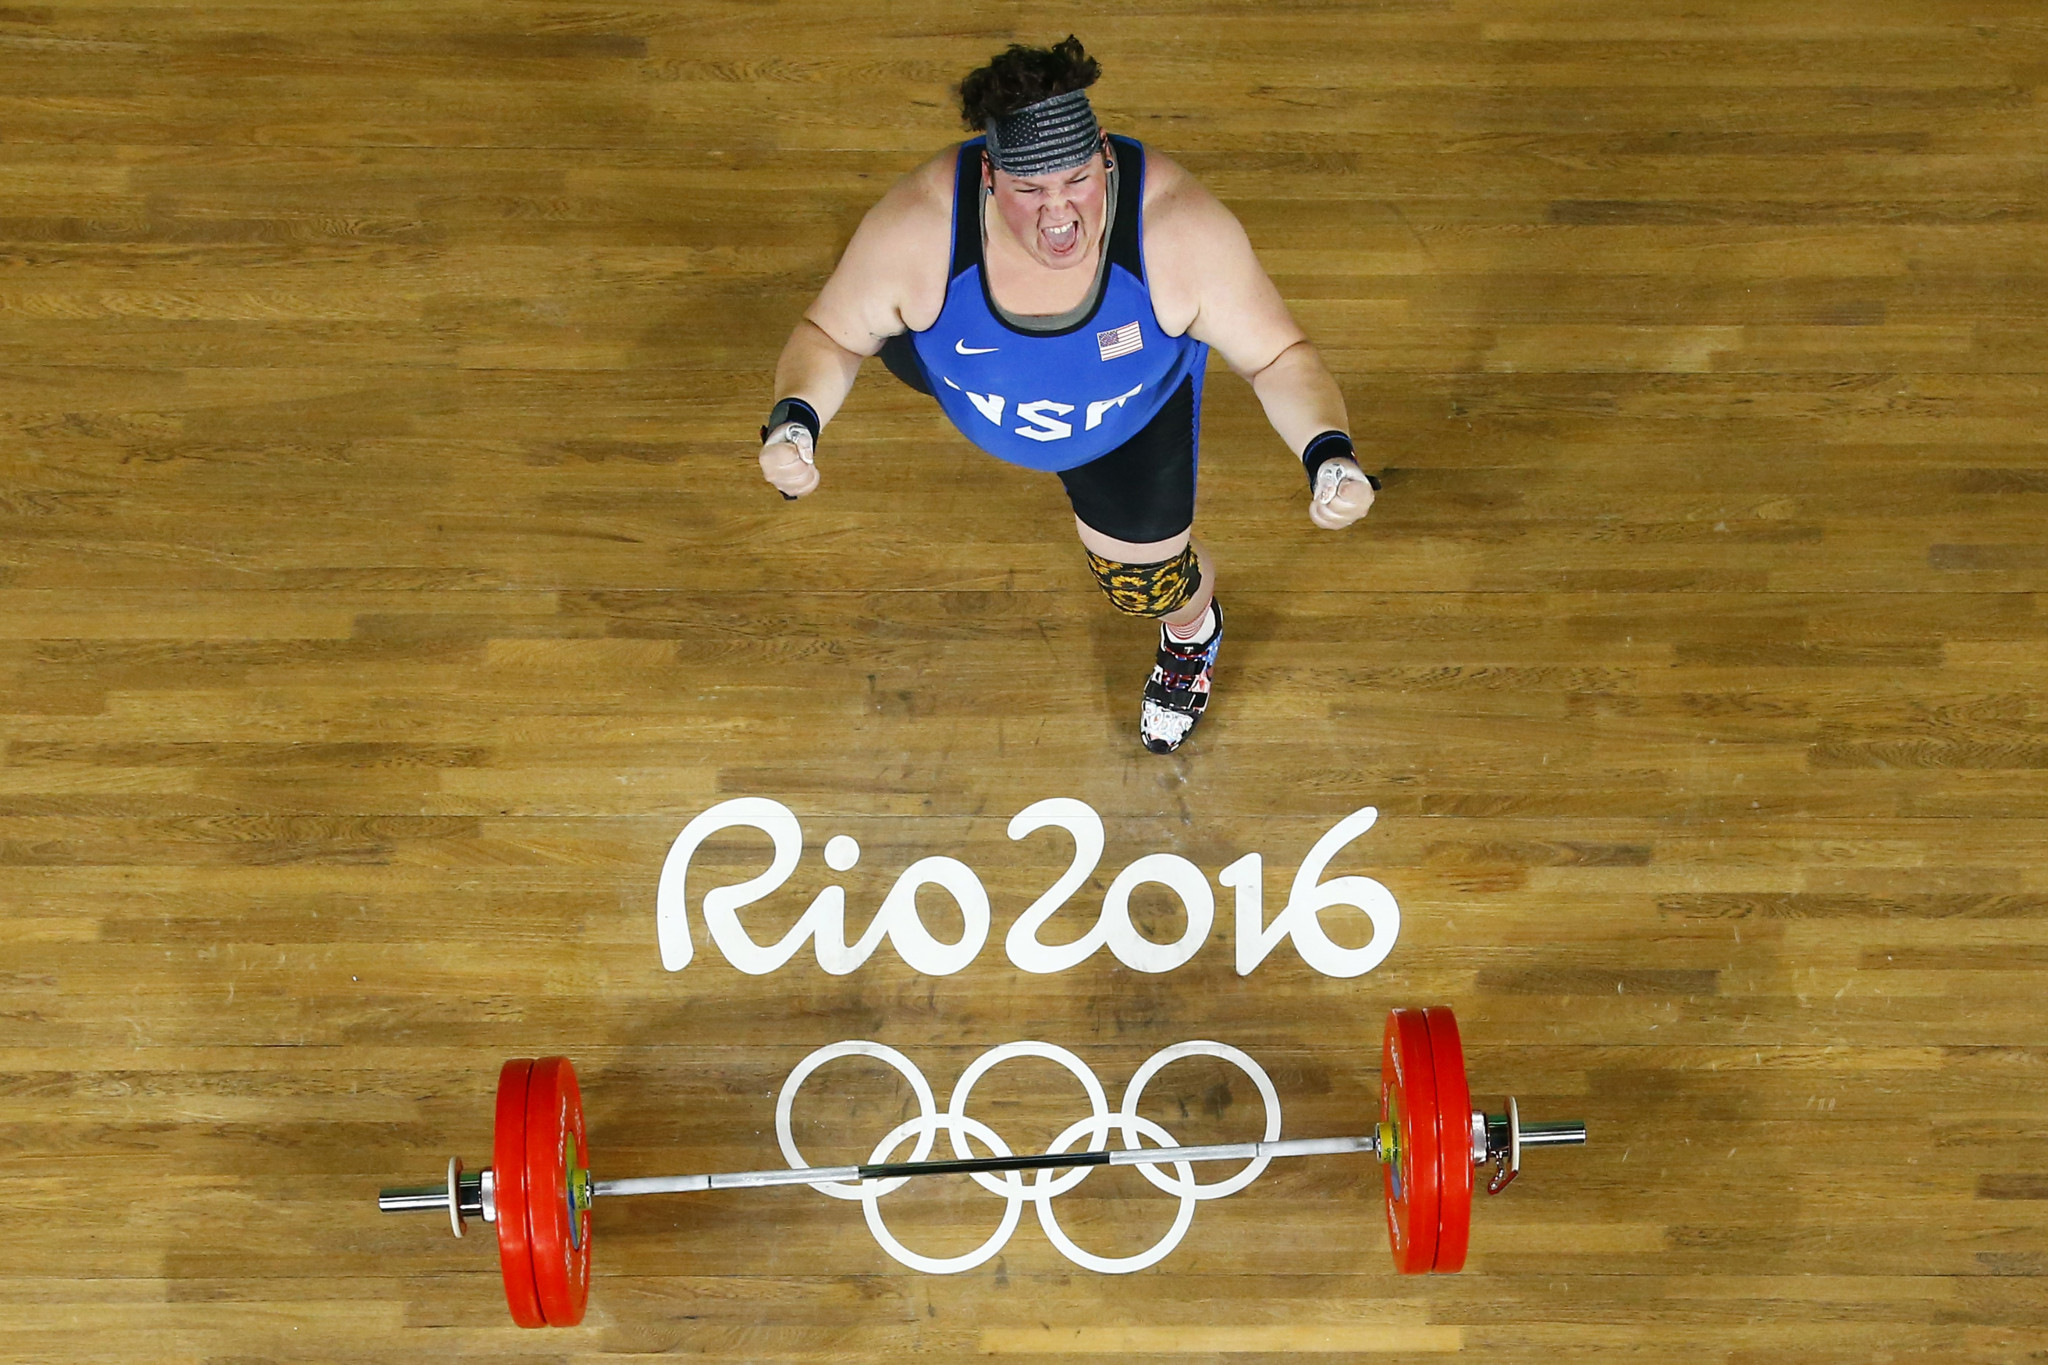 American Sarah Robles is among the athletes vying with Laurel Hubbard for super-heavyweight medals ©Getty Images